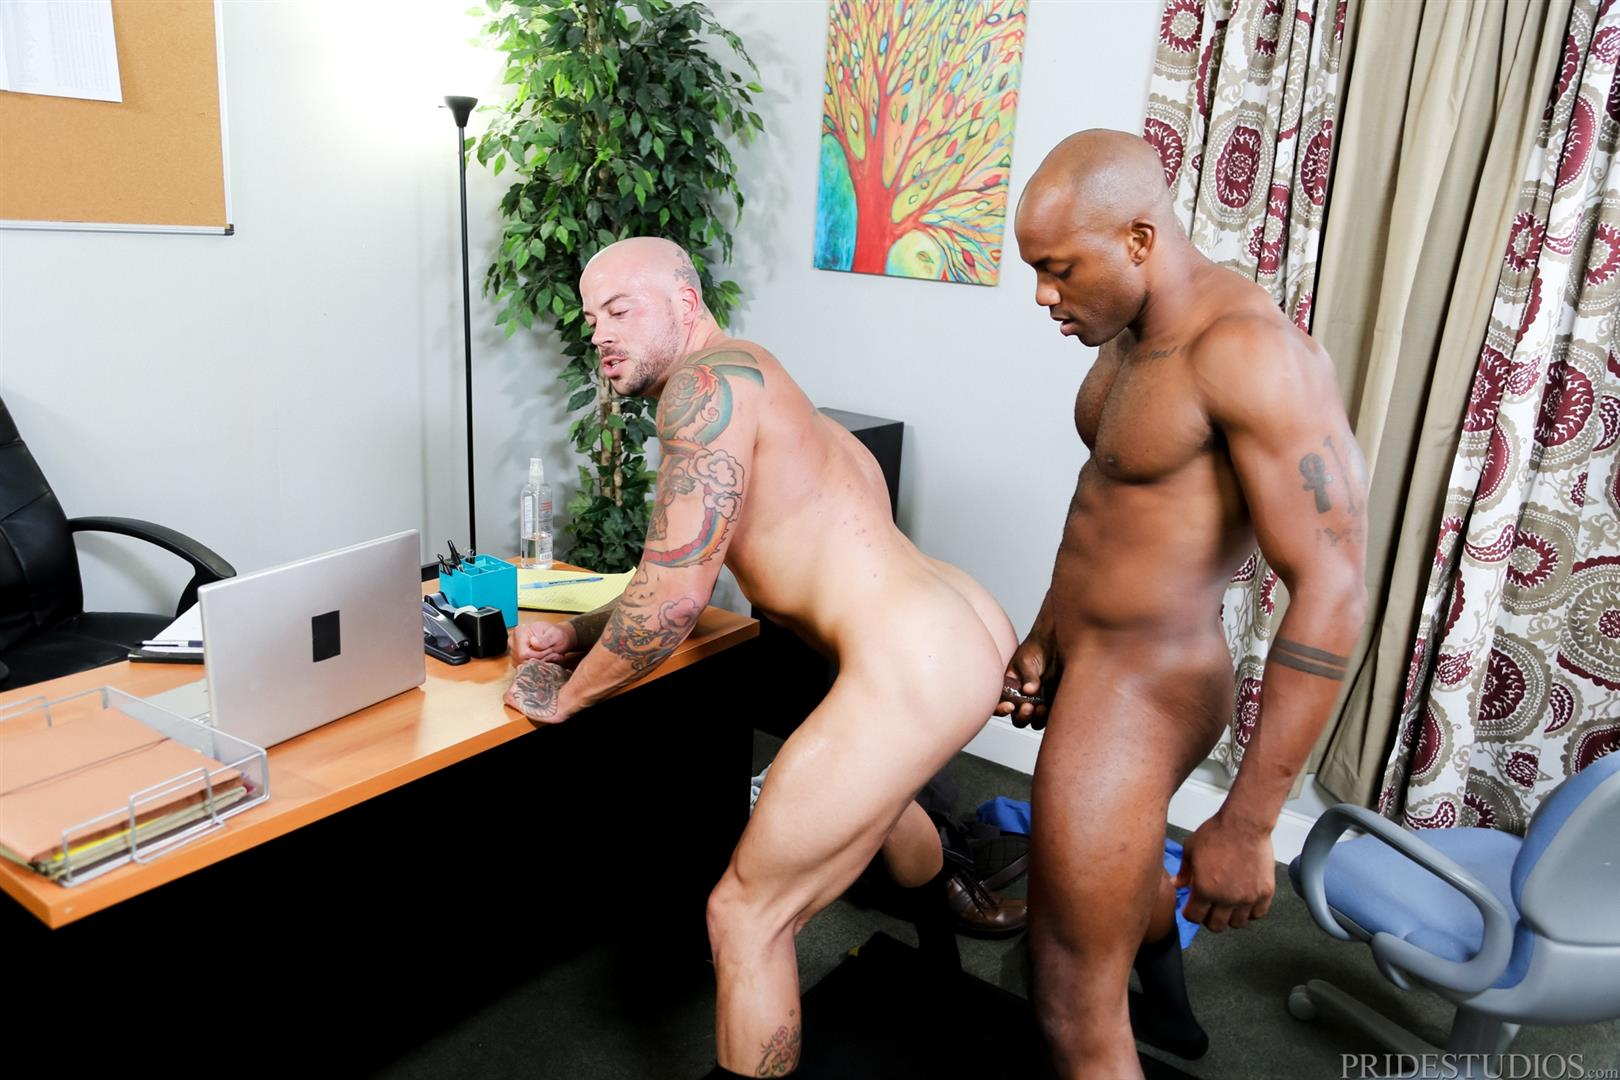 Sean Duran and Osiris Blade Extra Big Dicks Black Cock Interracial Amateur Gay Porn 15 White Muscle Hunk Takes A Big Black Cock Up The Ass During A Job Interview